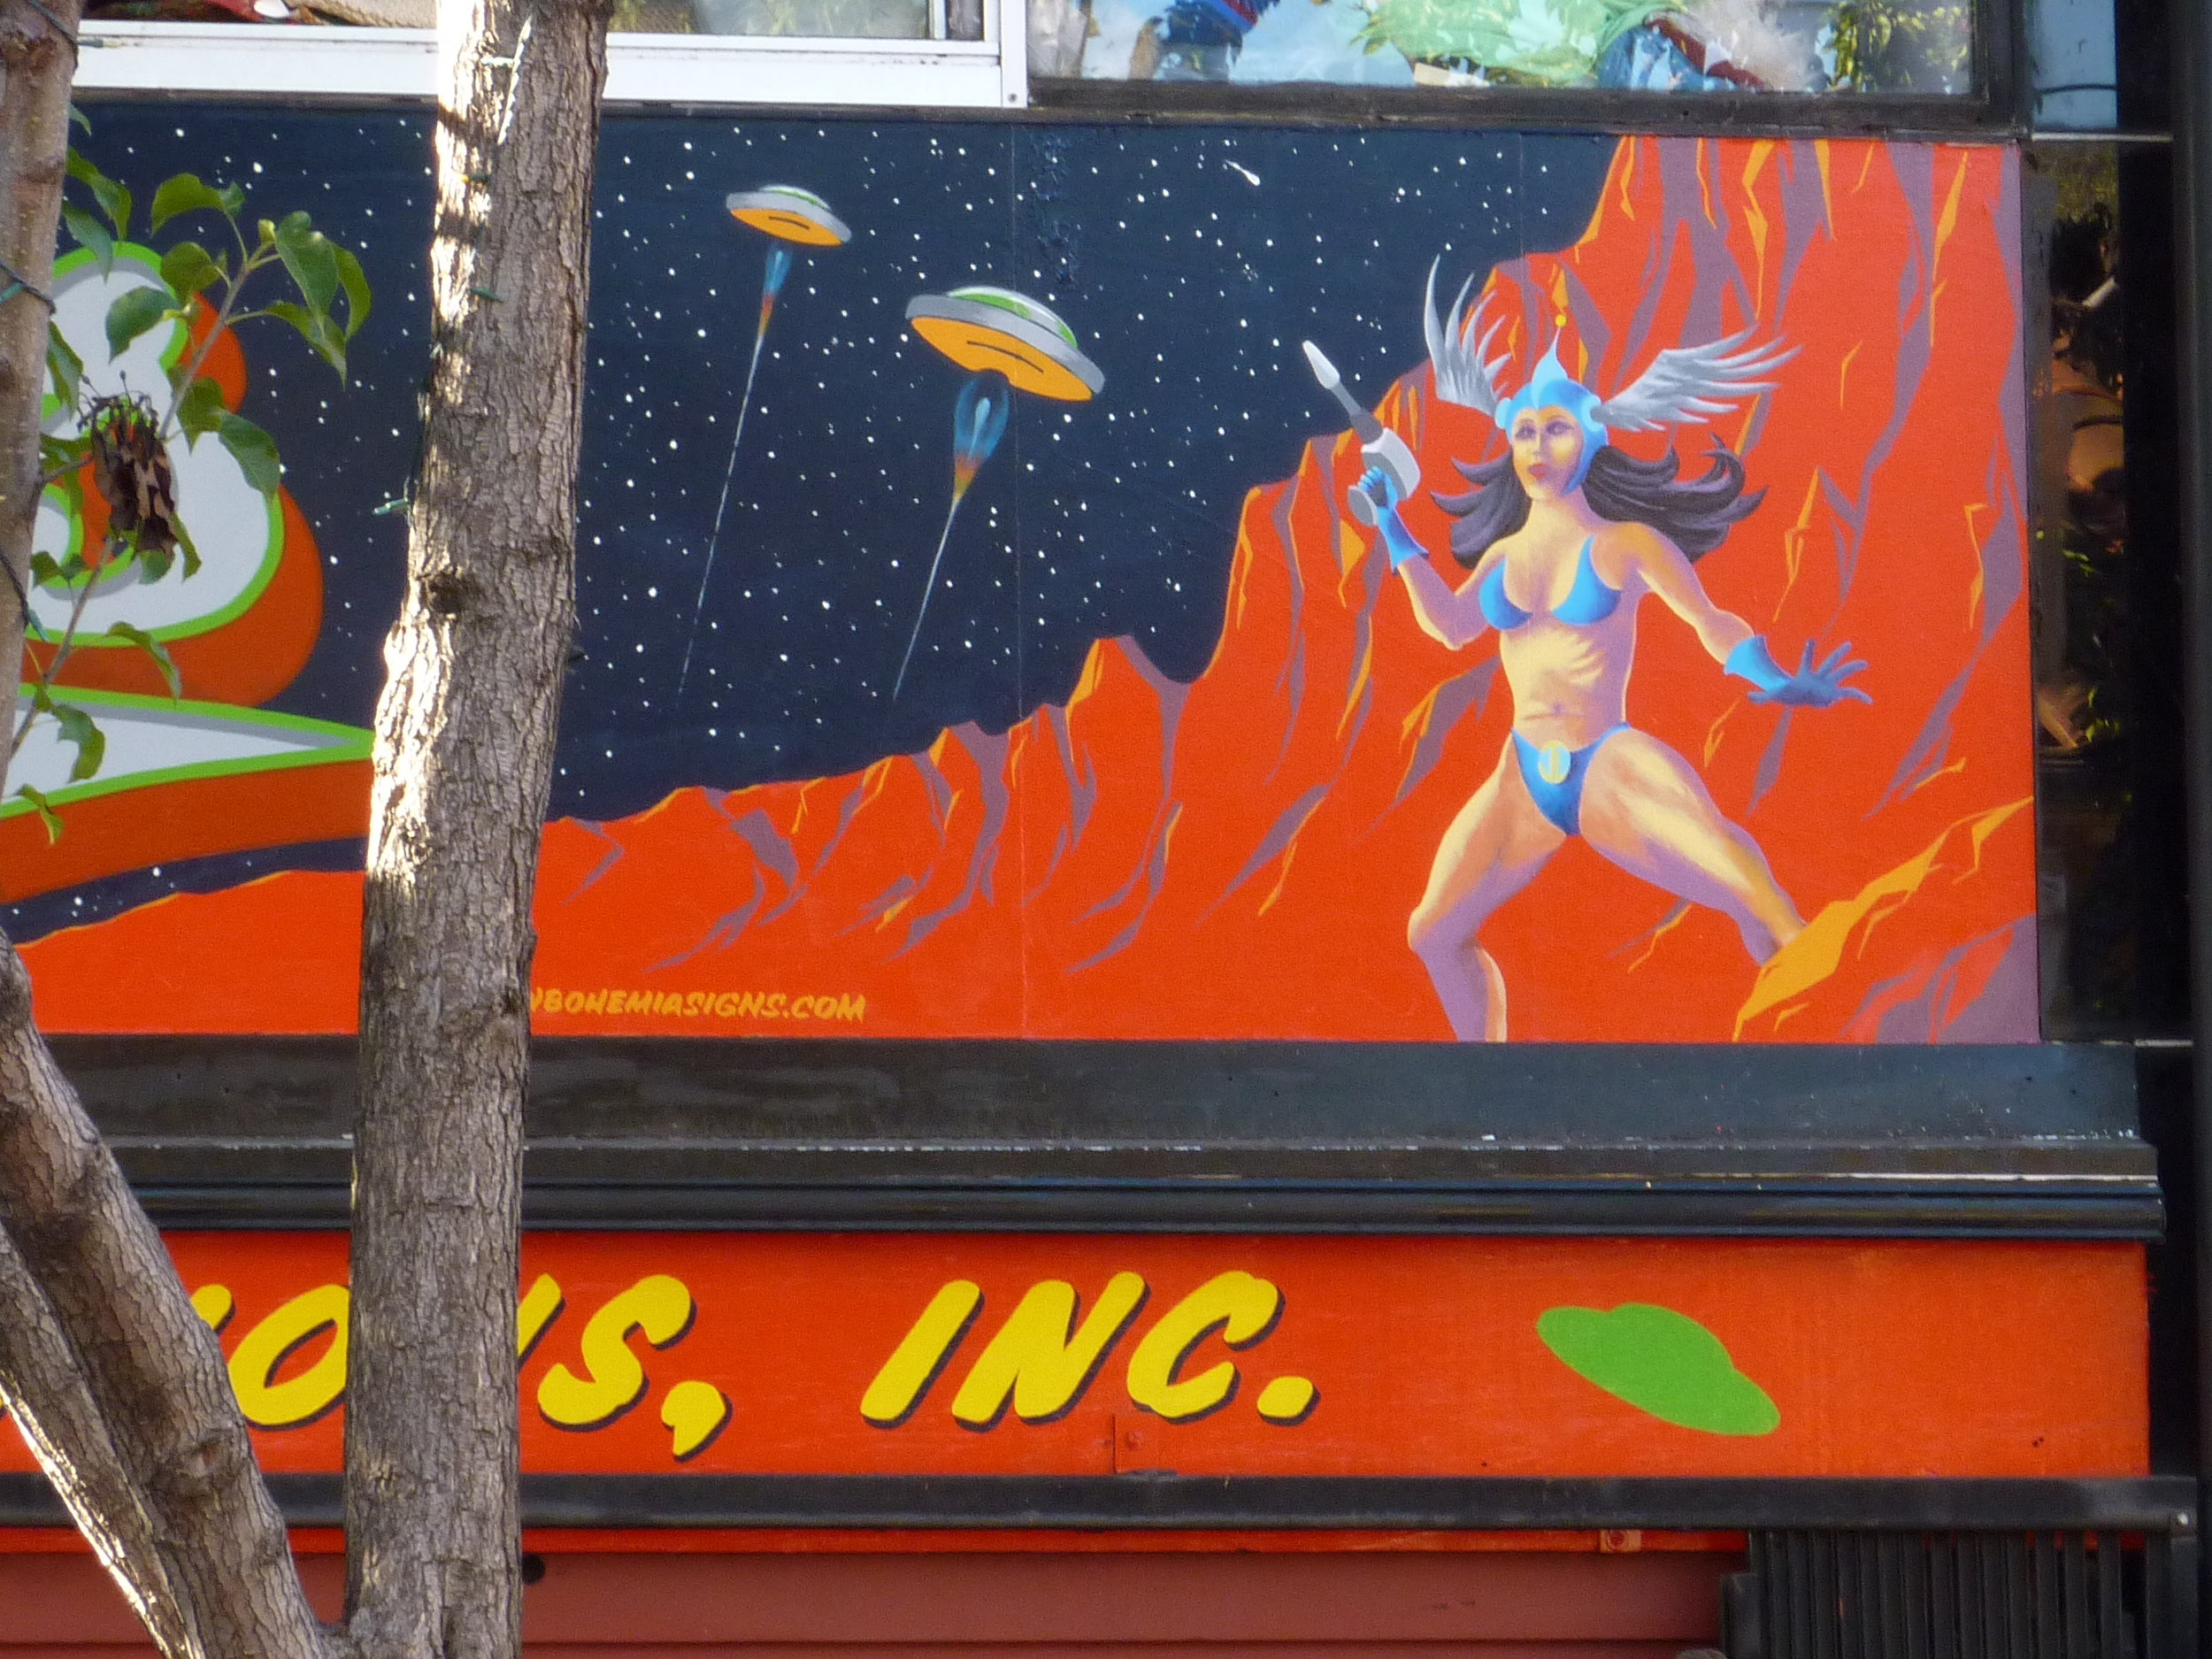 HAND-mars-storefront-warrior-babe-and-flying-saucers-detail_4307287066_o.jpg